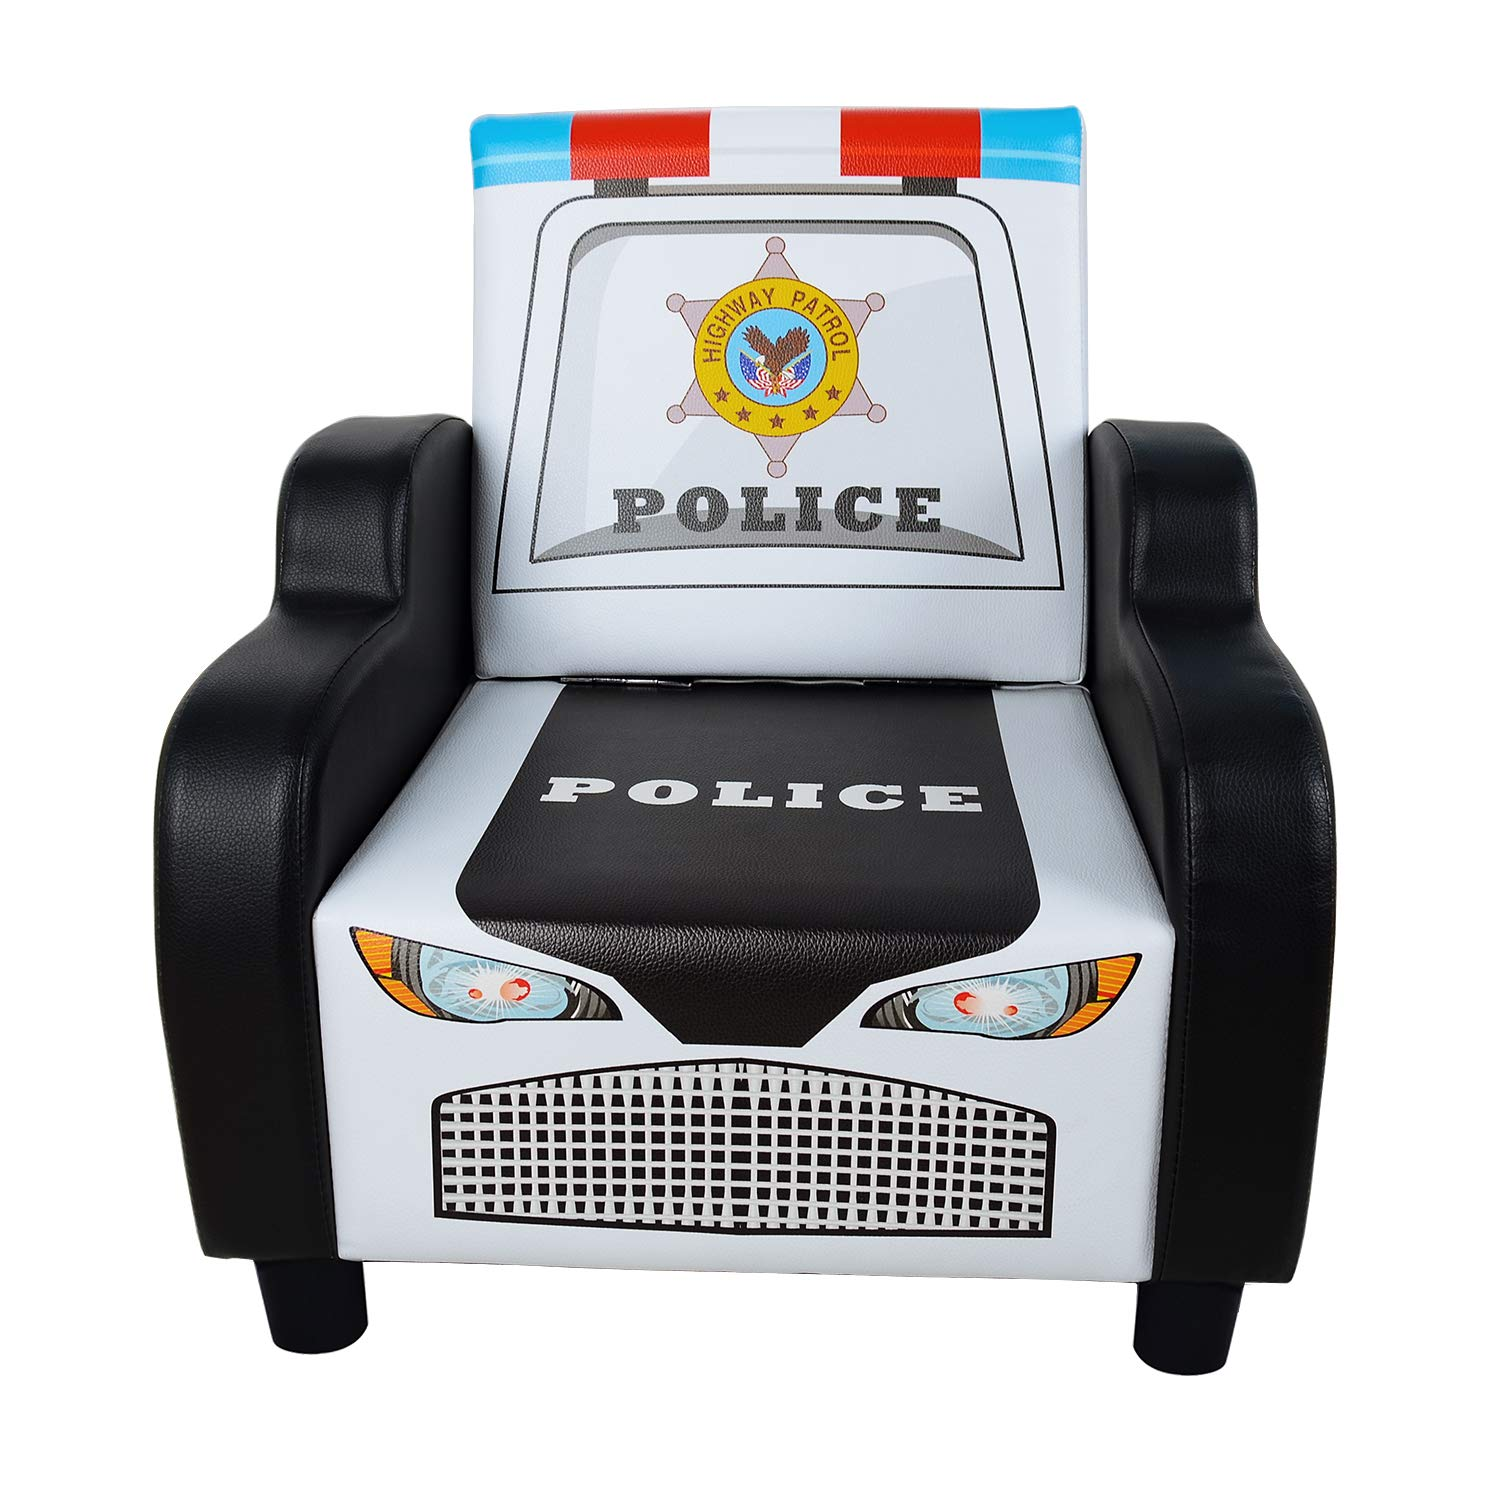 Children's Police Car Shape Sofa Chair Black Kid's Armrest Couch Small Kids Reading Chair Living Room Bedroom Furniture for Boys & Girls